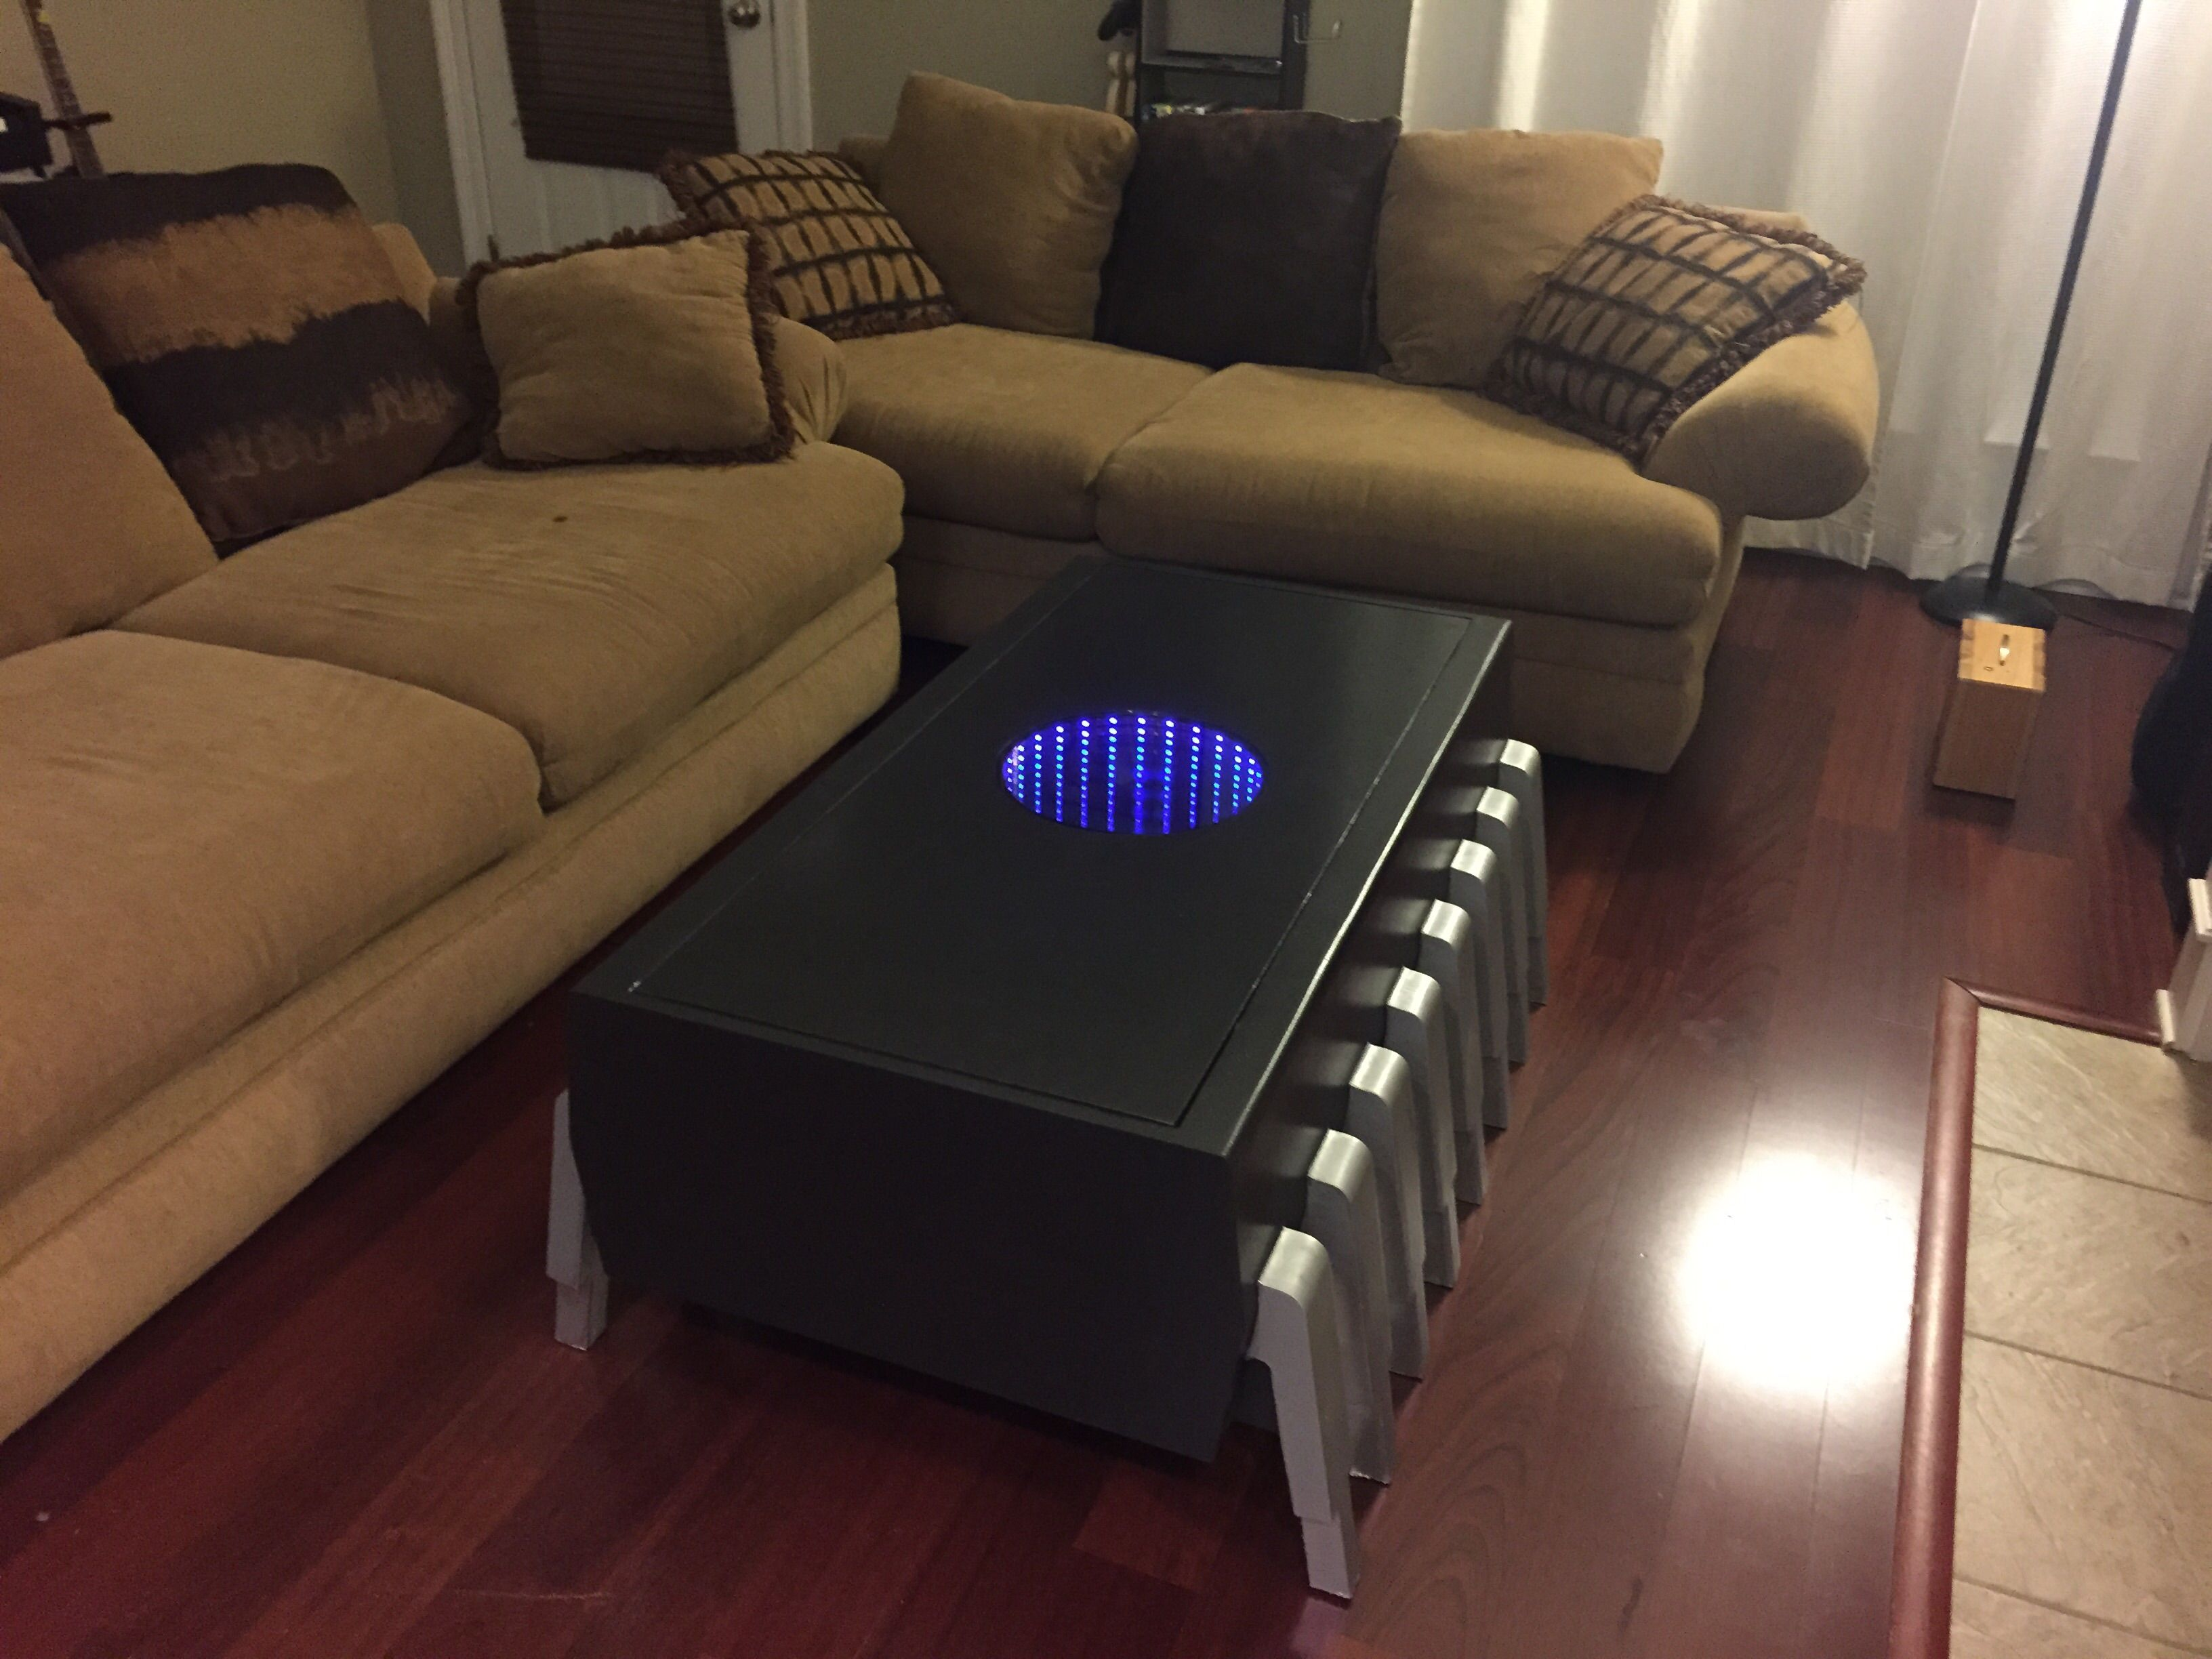 A Memory Chip Coffee Table With An Illuminated Infinity Screen Cool Coffee Tables Antique Mirror Coffee Tables Square Mirrored Coffee Table [ 2448 x 3264 Pixel ]